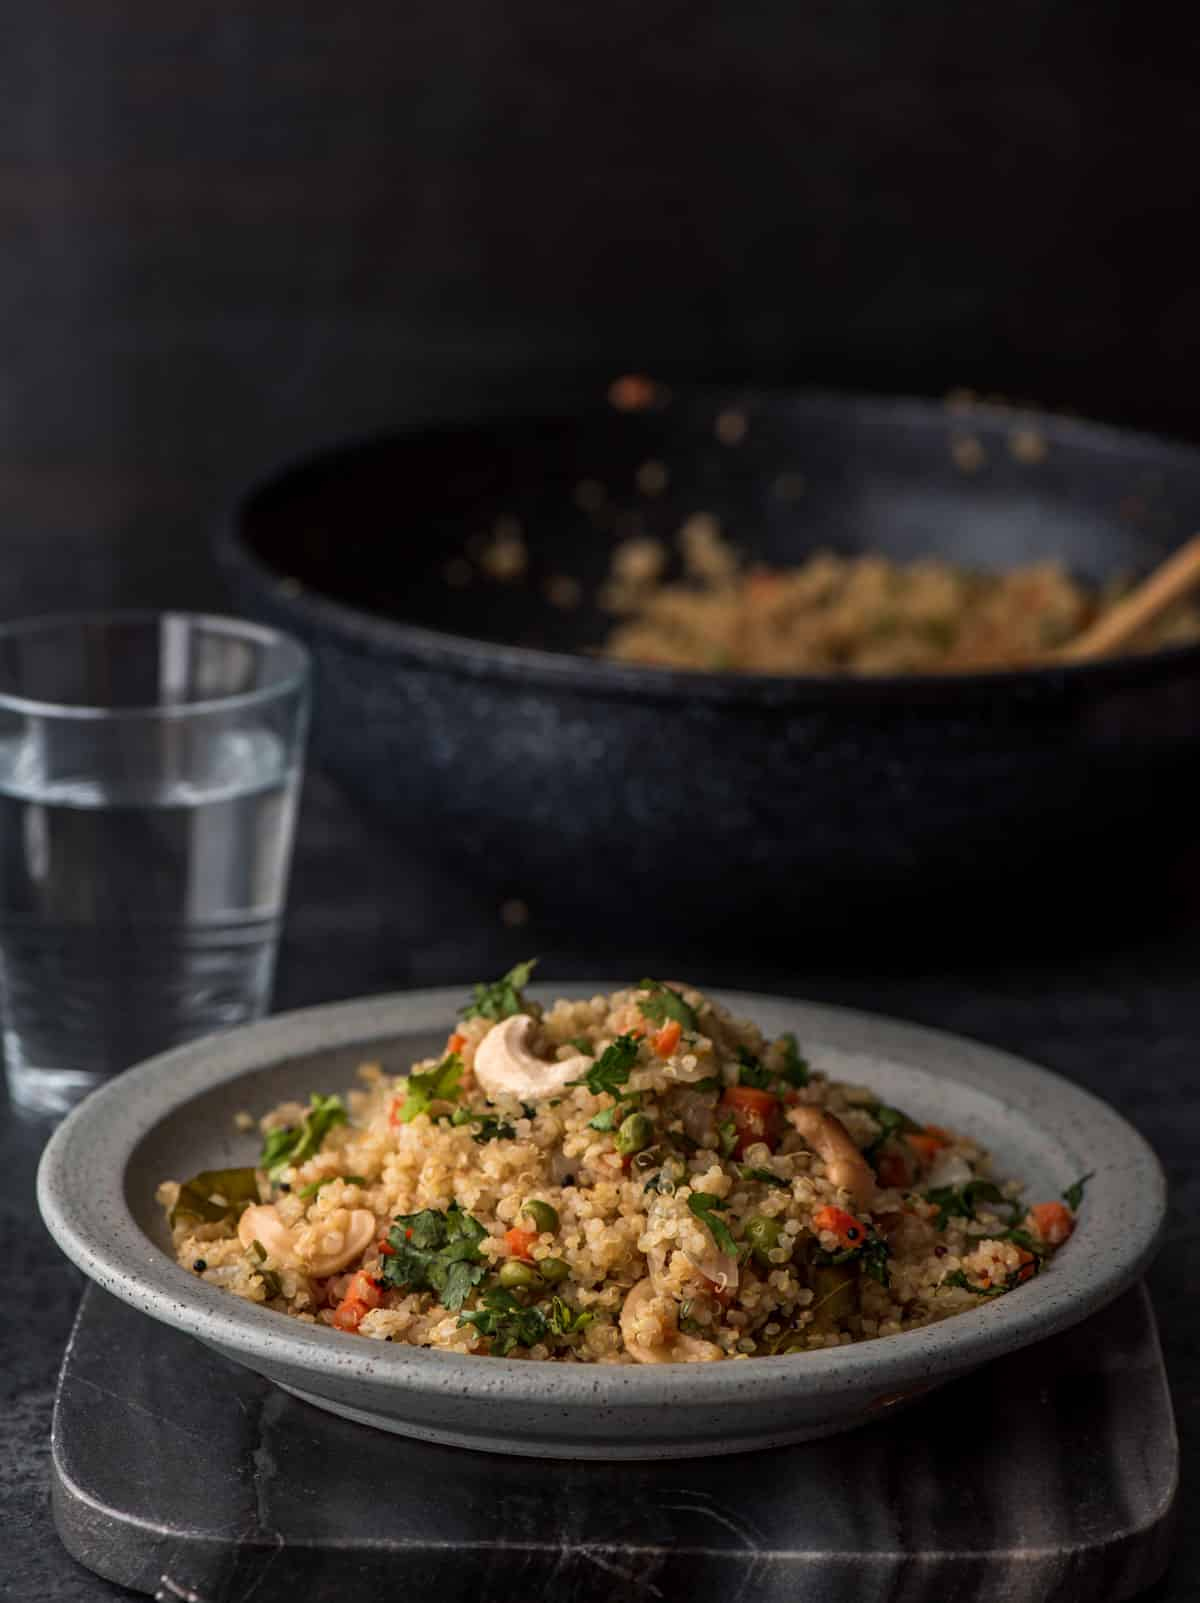 You'll love this delicious vegetable quinoa pulao - it is a great way to work more veggies in your meal and also you can put them together in less than 30 minutes.